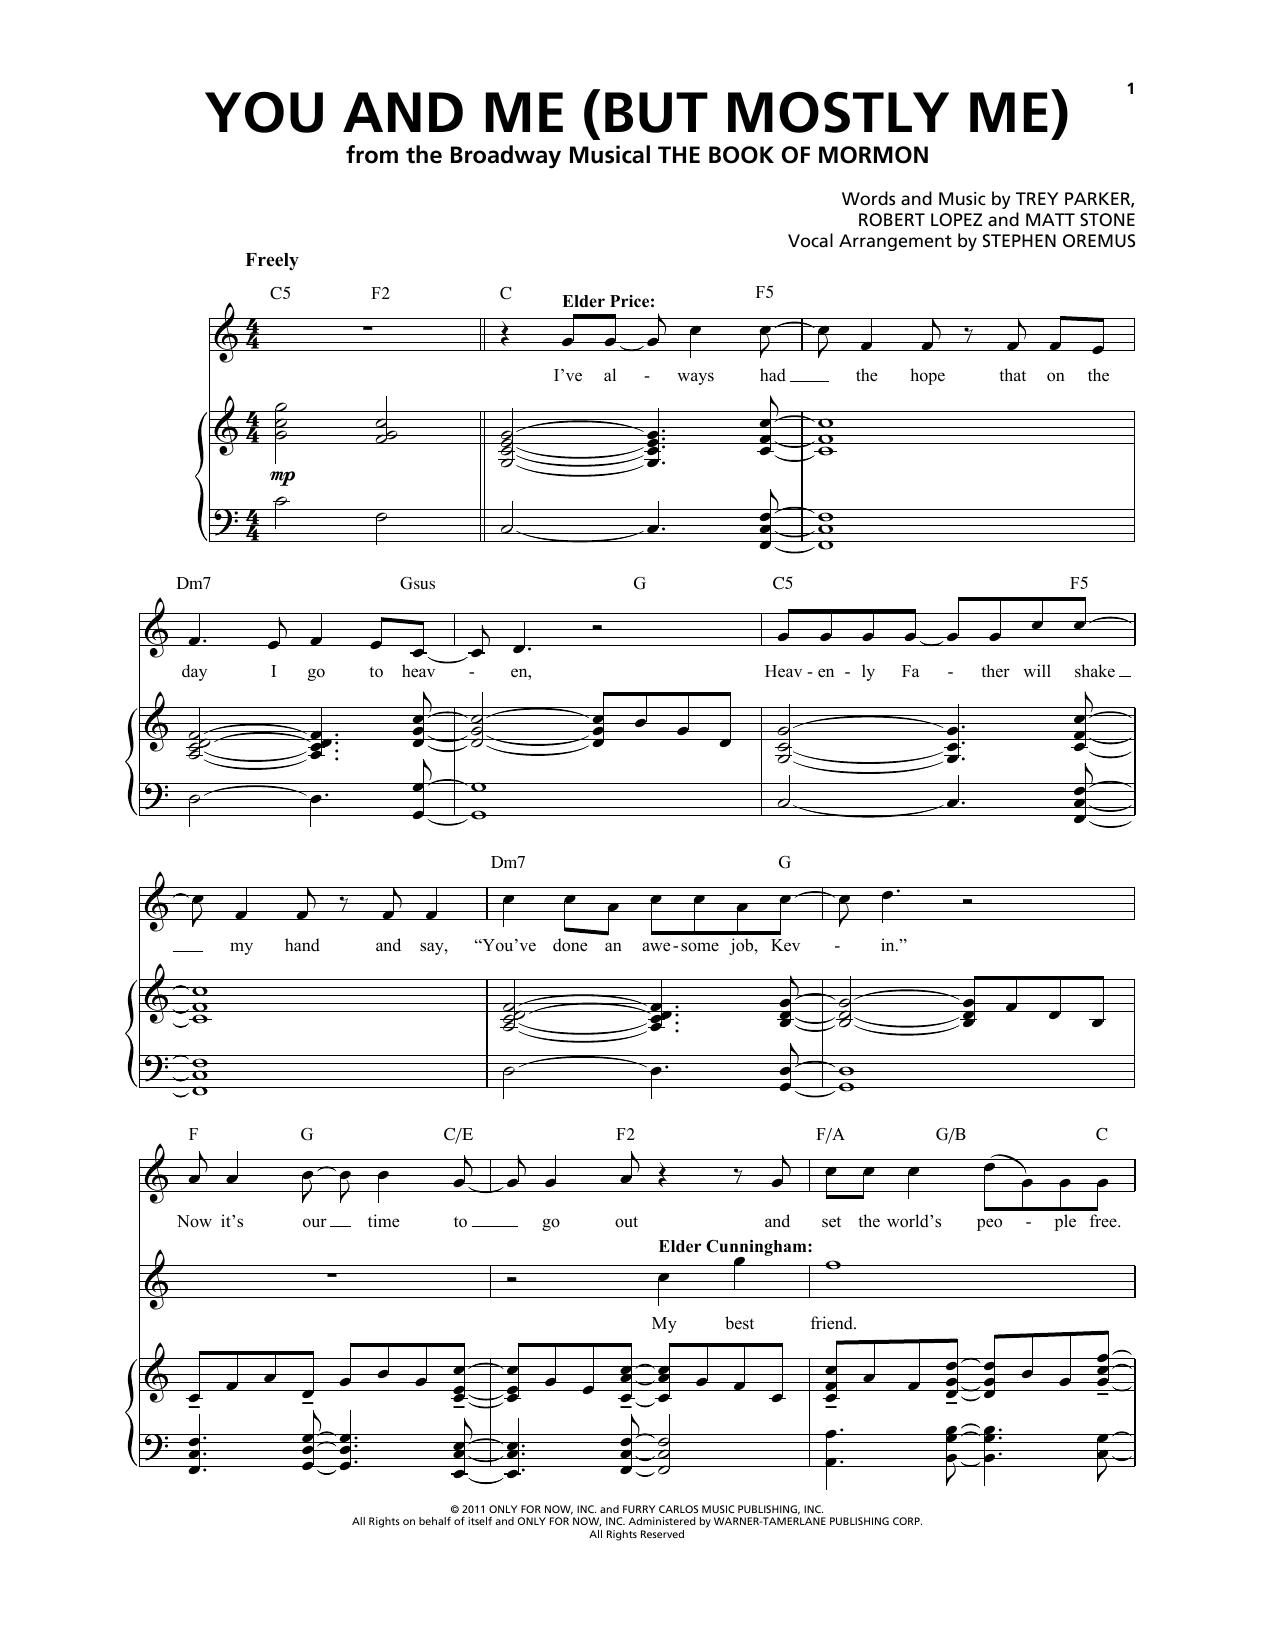 You And Me (But Mostly Me) (from The Book of Mormon) Sheet Music